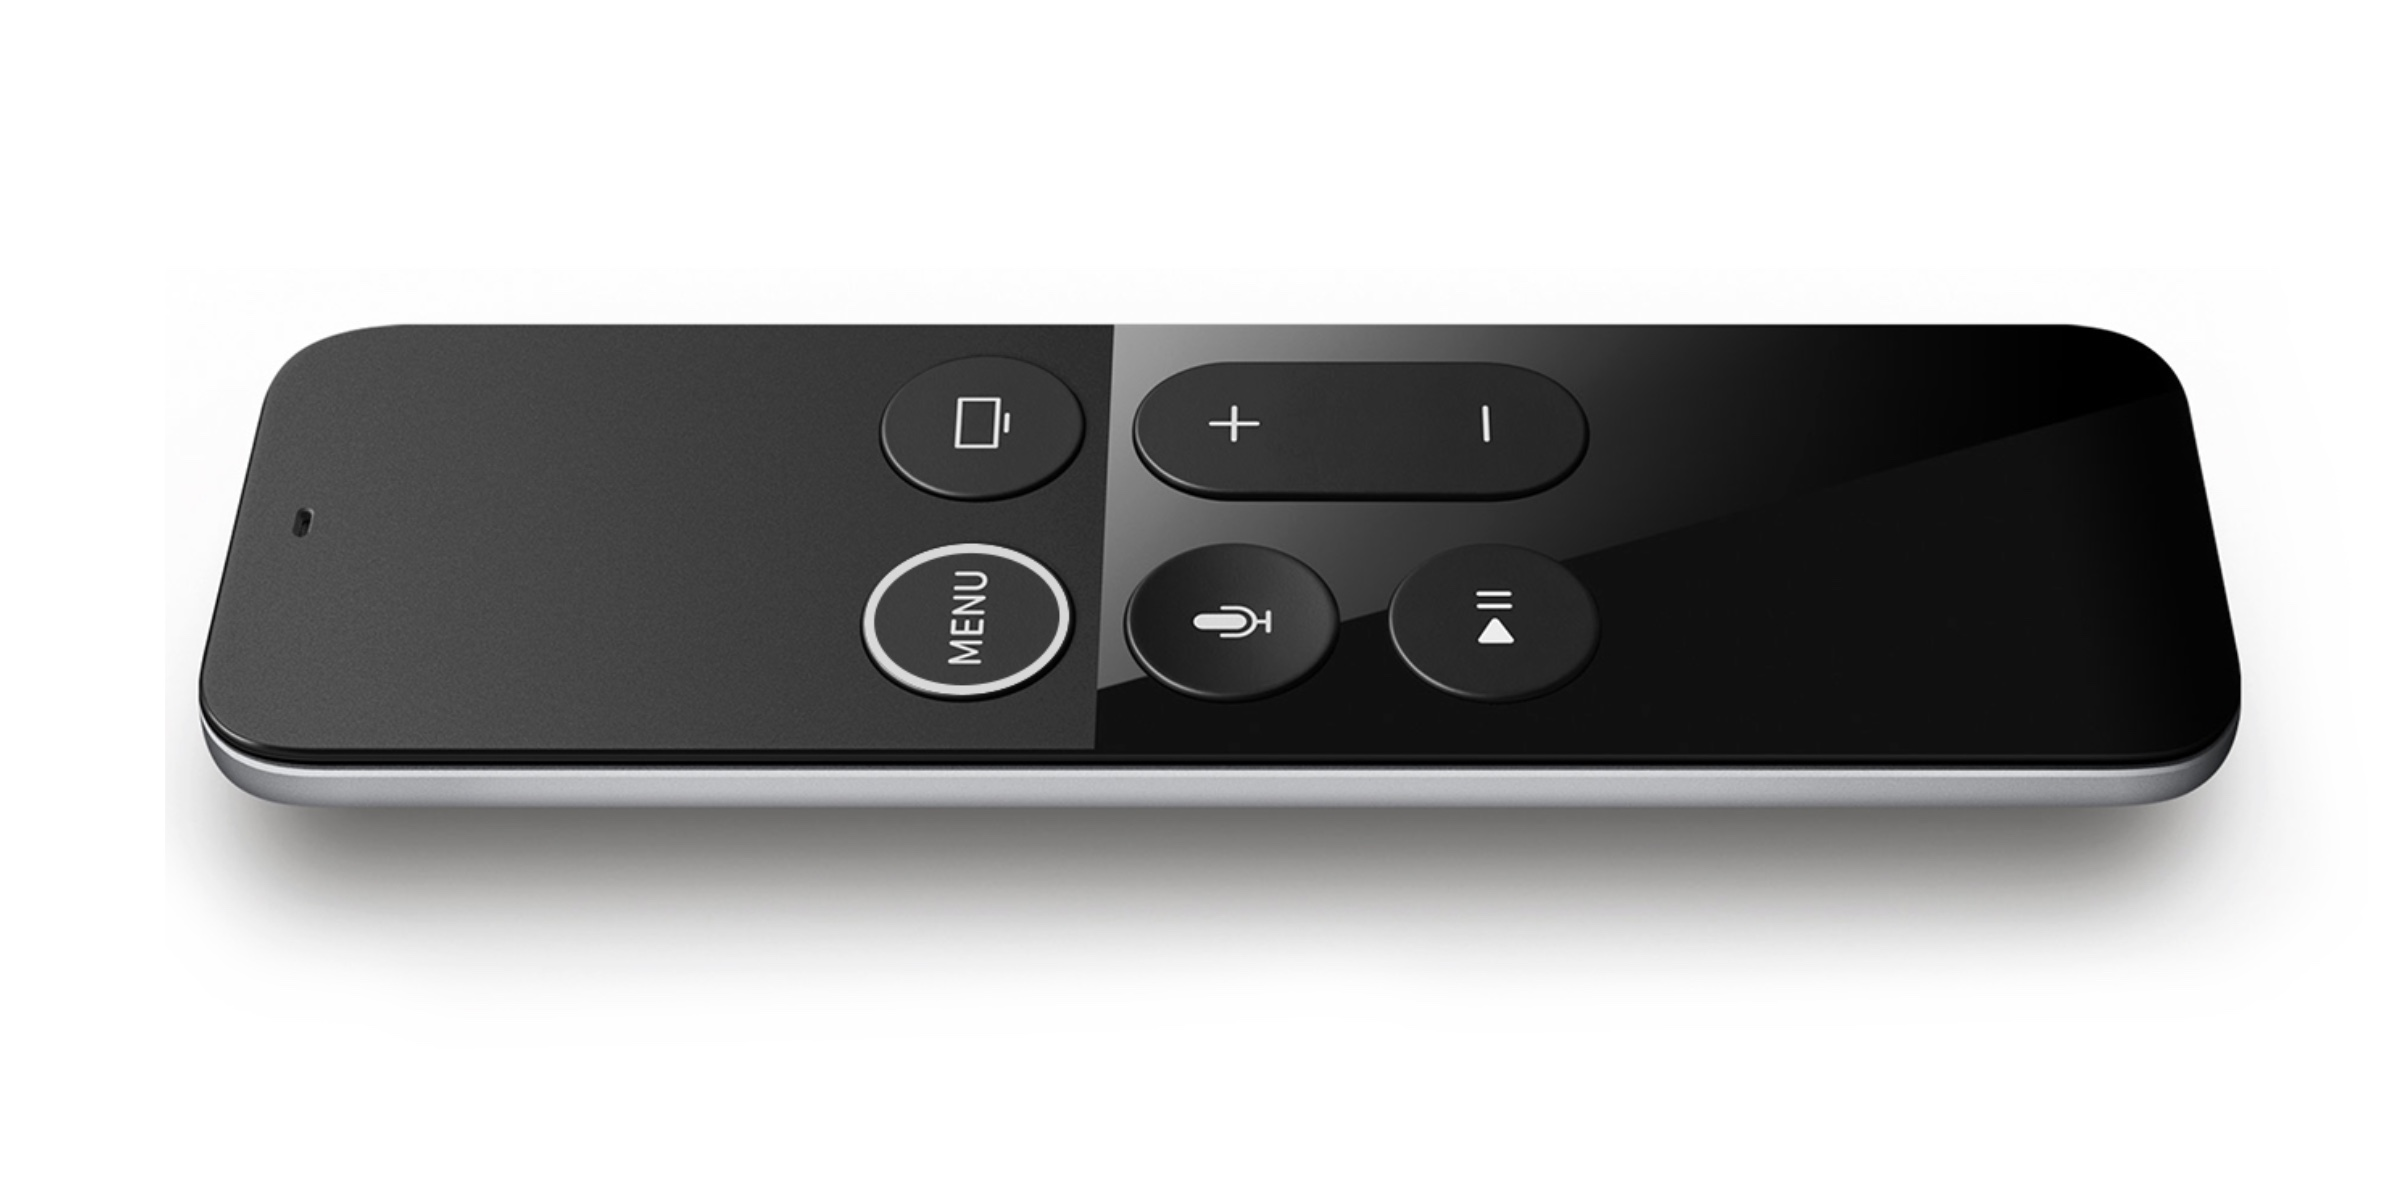 Former Apple engineer details how the Apple TV Remote app inspired the Siri Remote, more